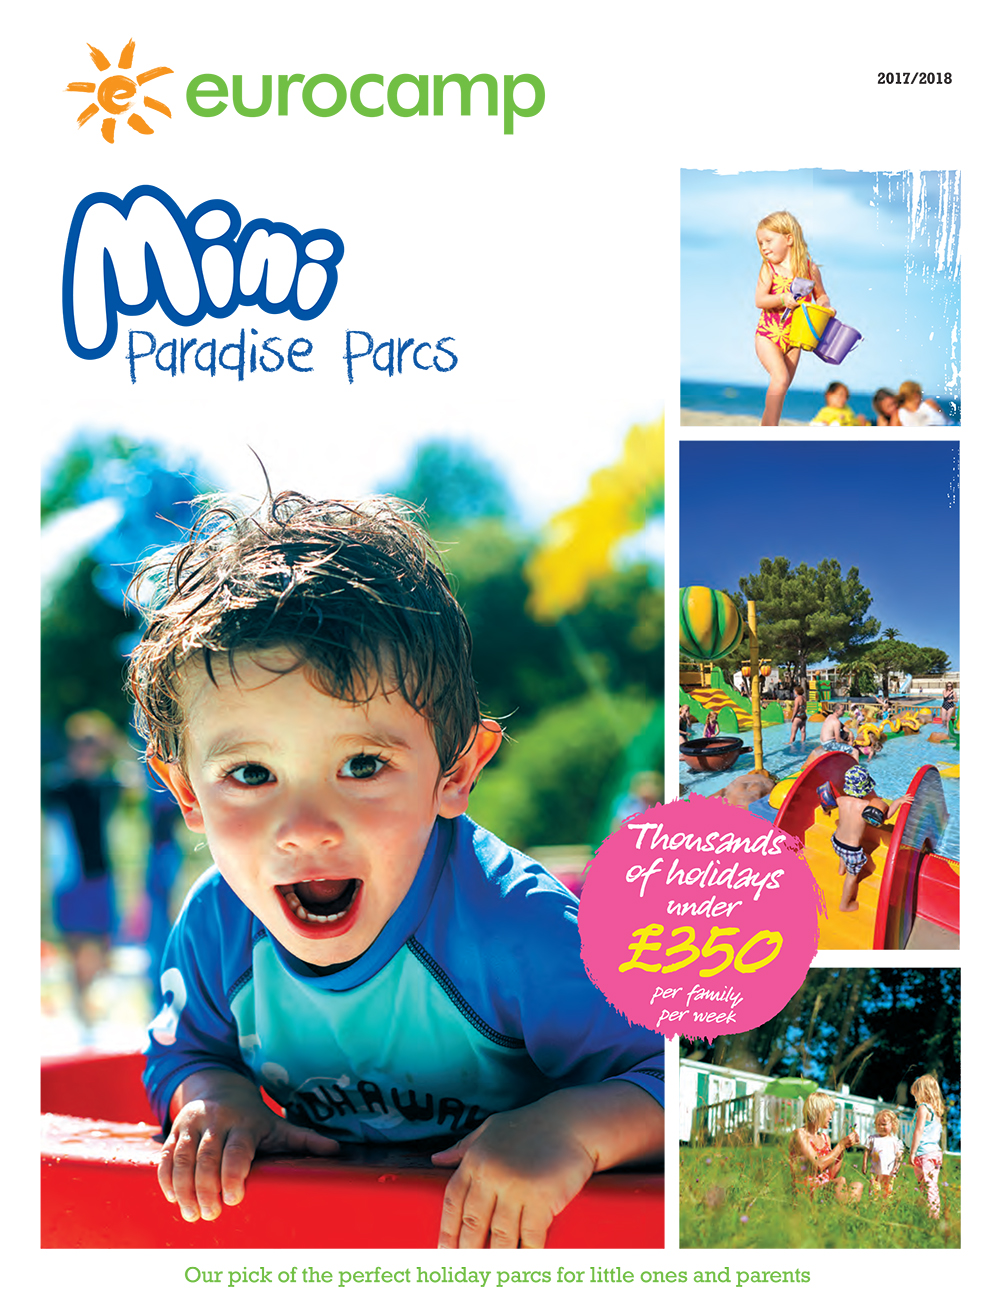 eurocamp toddlers camping  holidays